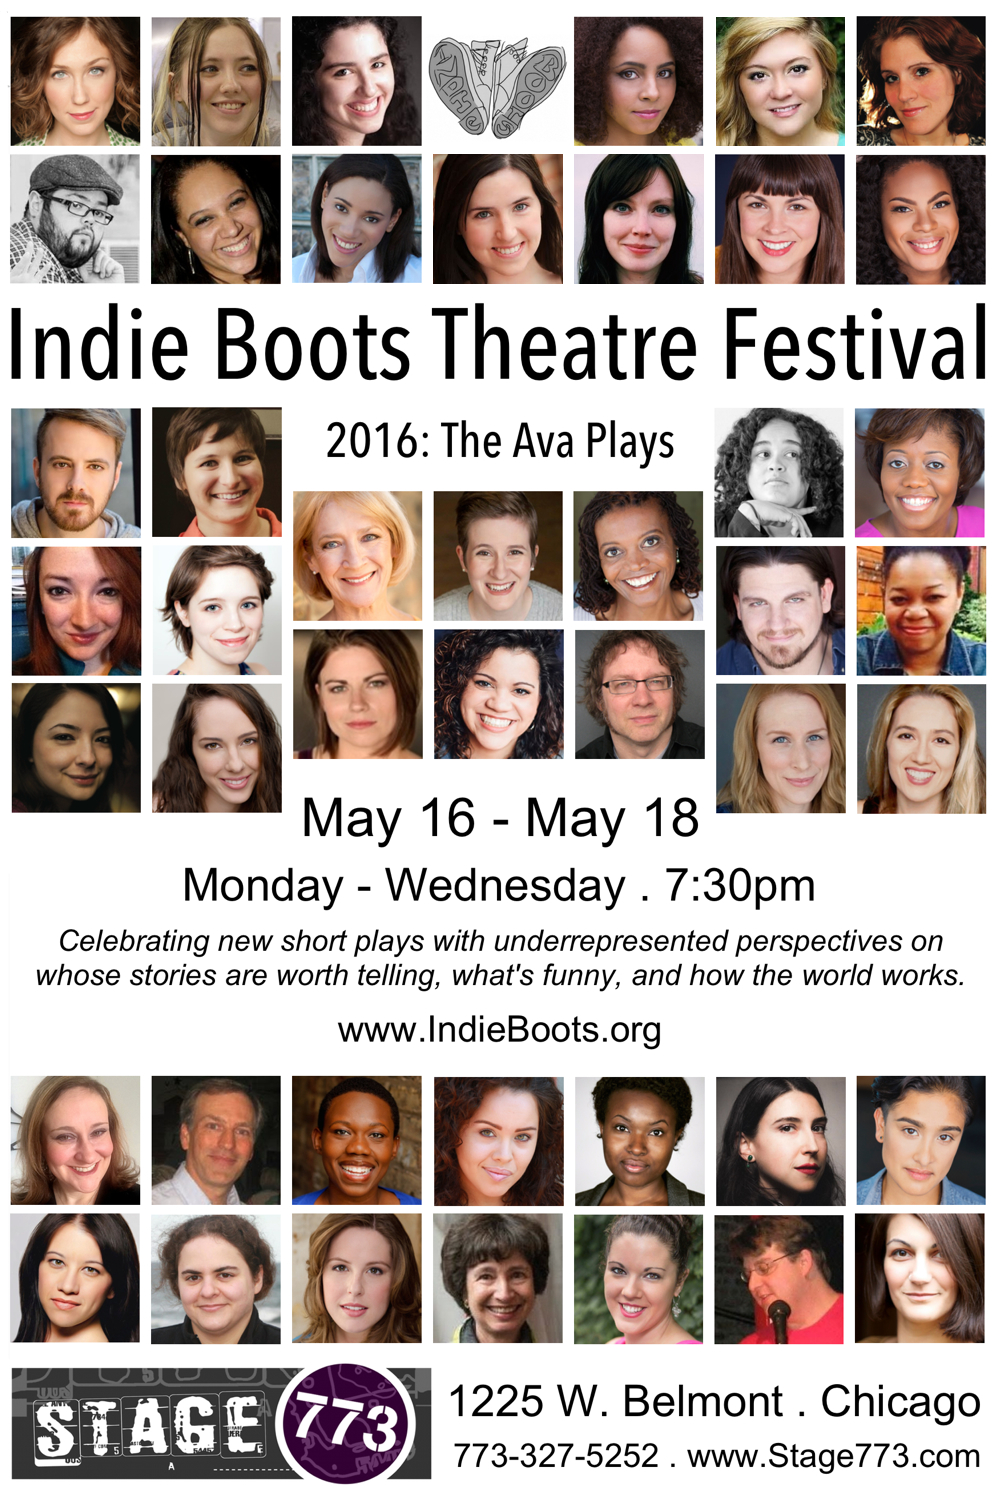 Indie Boots Theatre Festival postcard